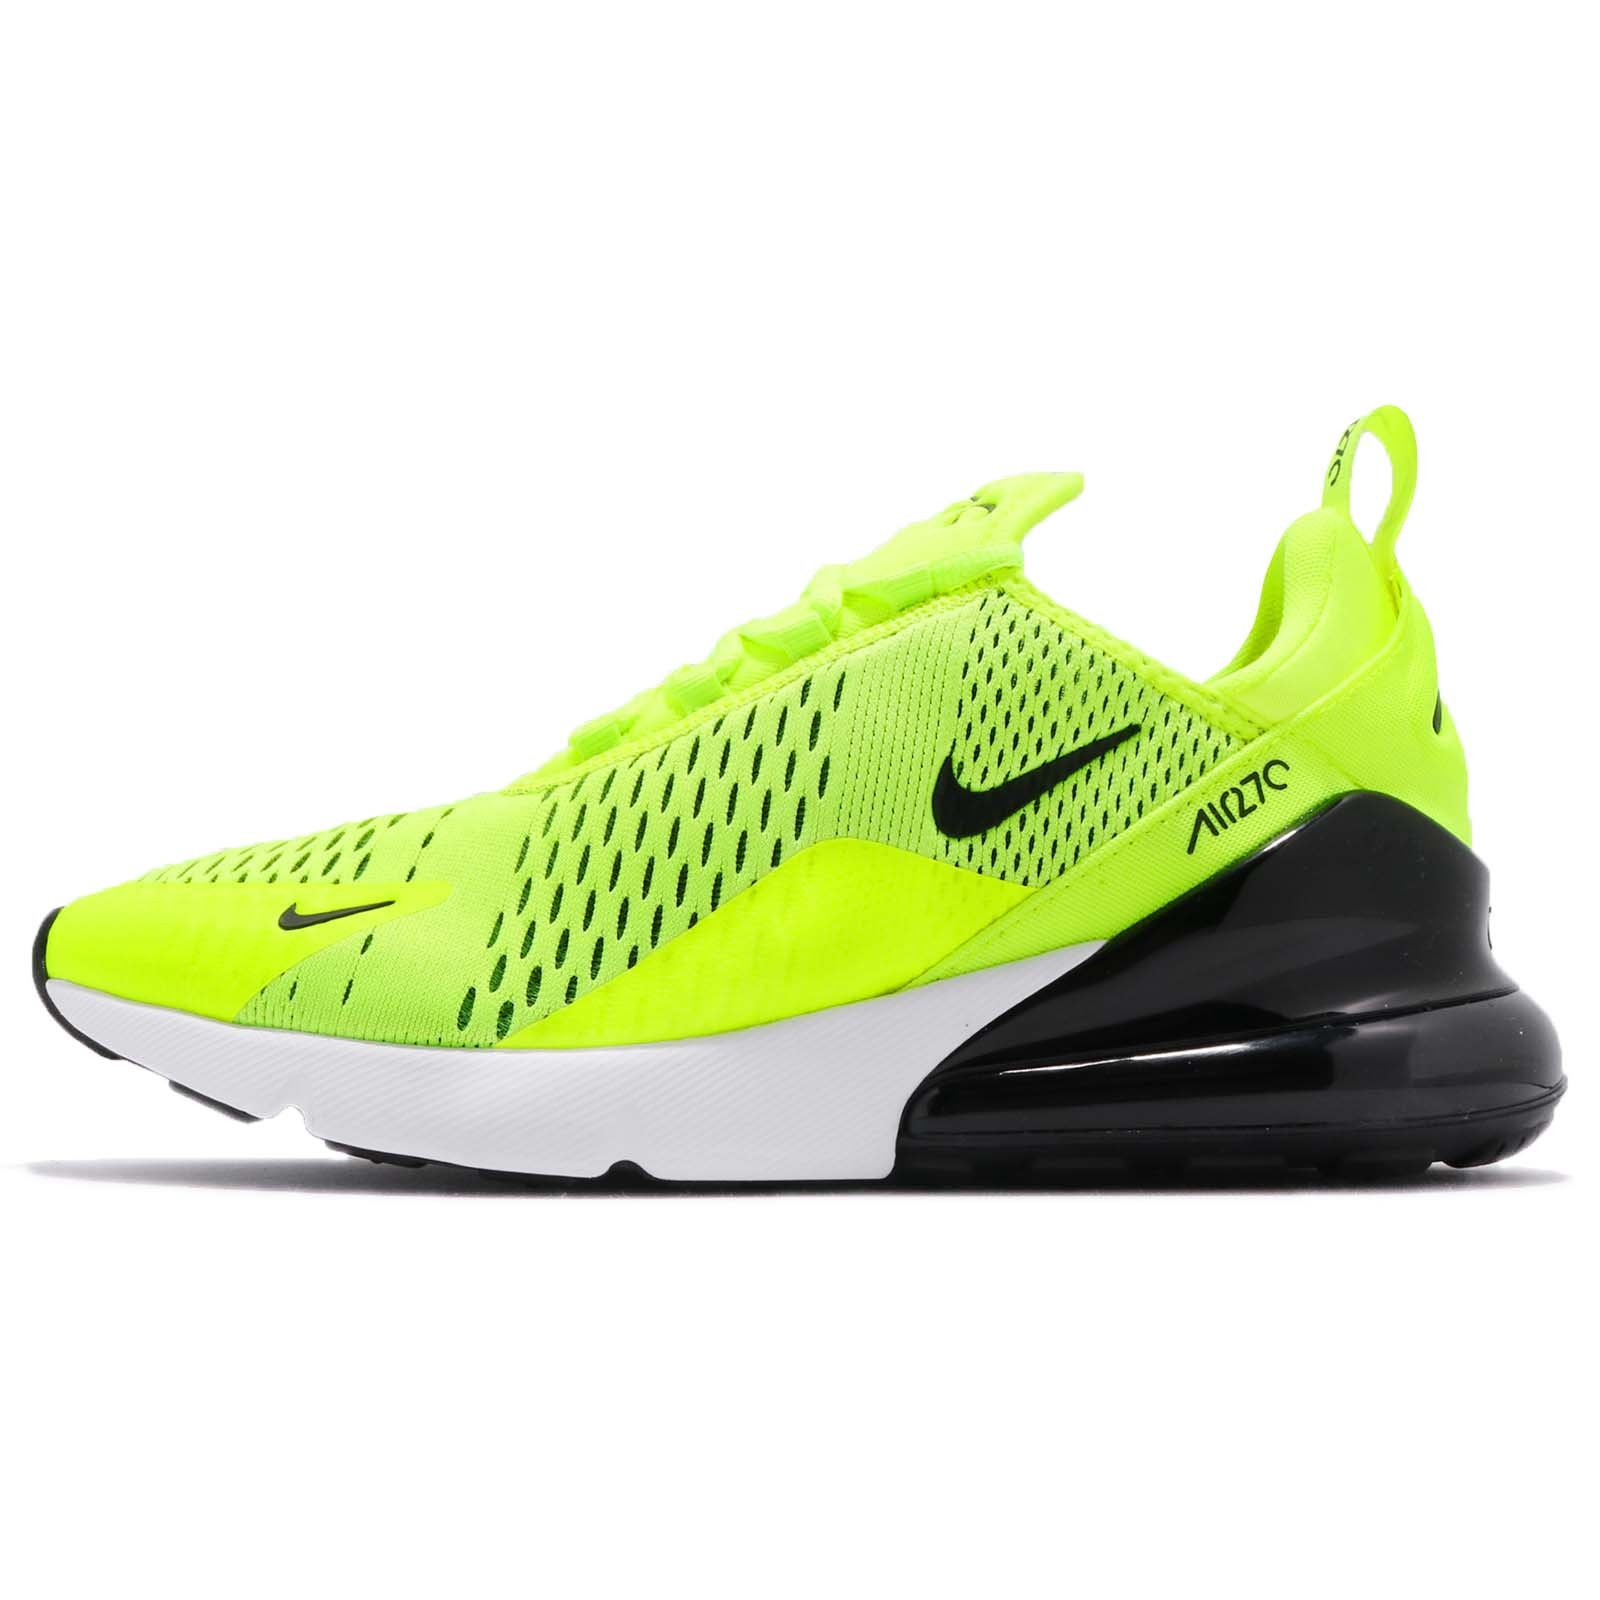 best service 0e375 8770a Galleon - Nike Air Max 270 Men s Shoes Volt Black Dark Grey White  Ah8050-701 (8.5 D(M) US)